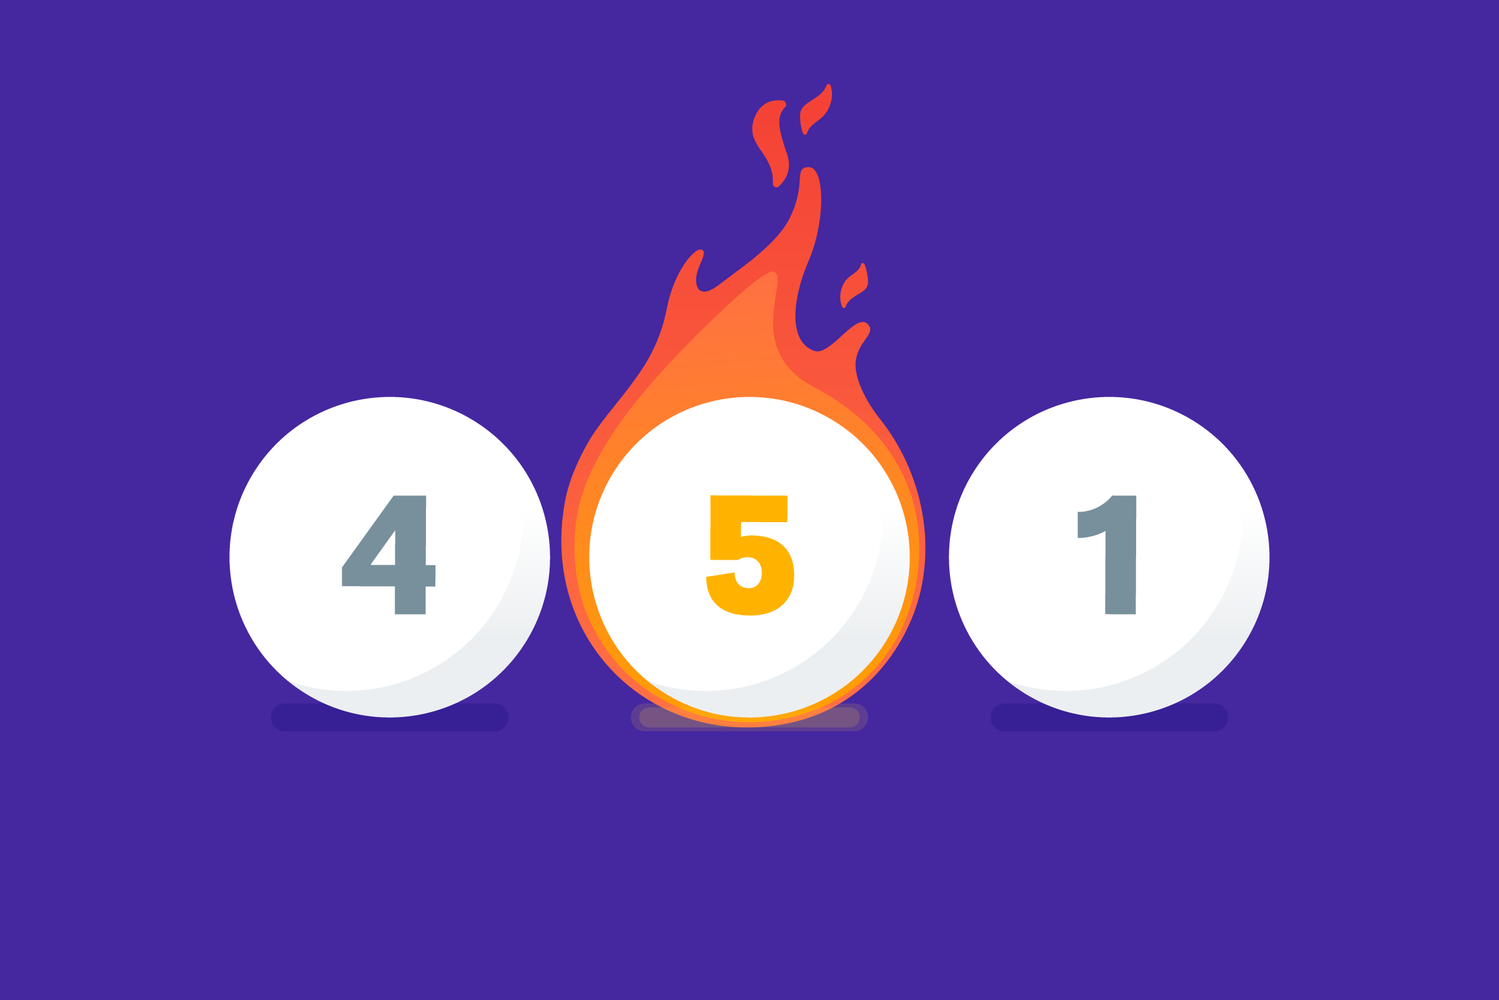 Pick 3 with Fireball and Daily 4 with Fireball are on Jackpocket